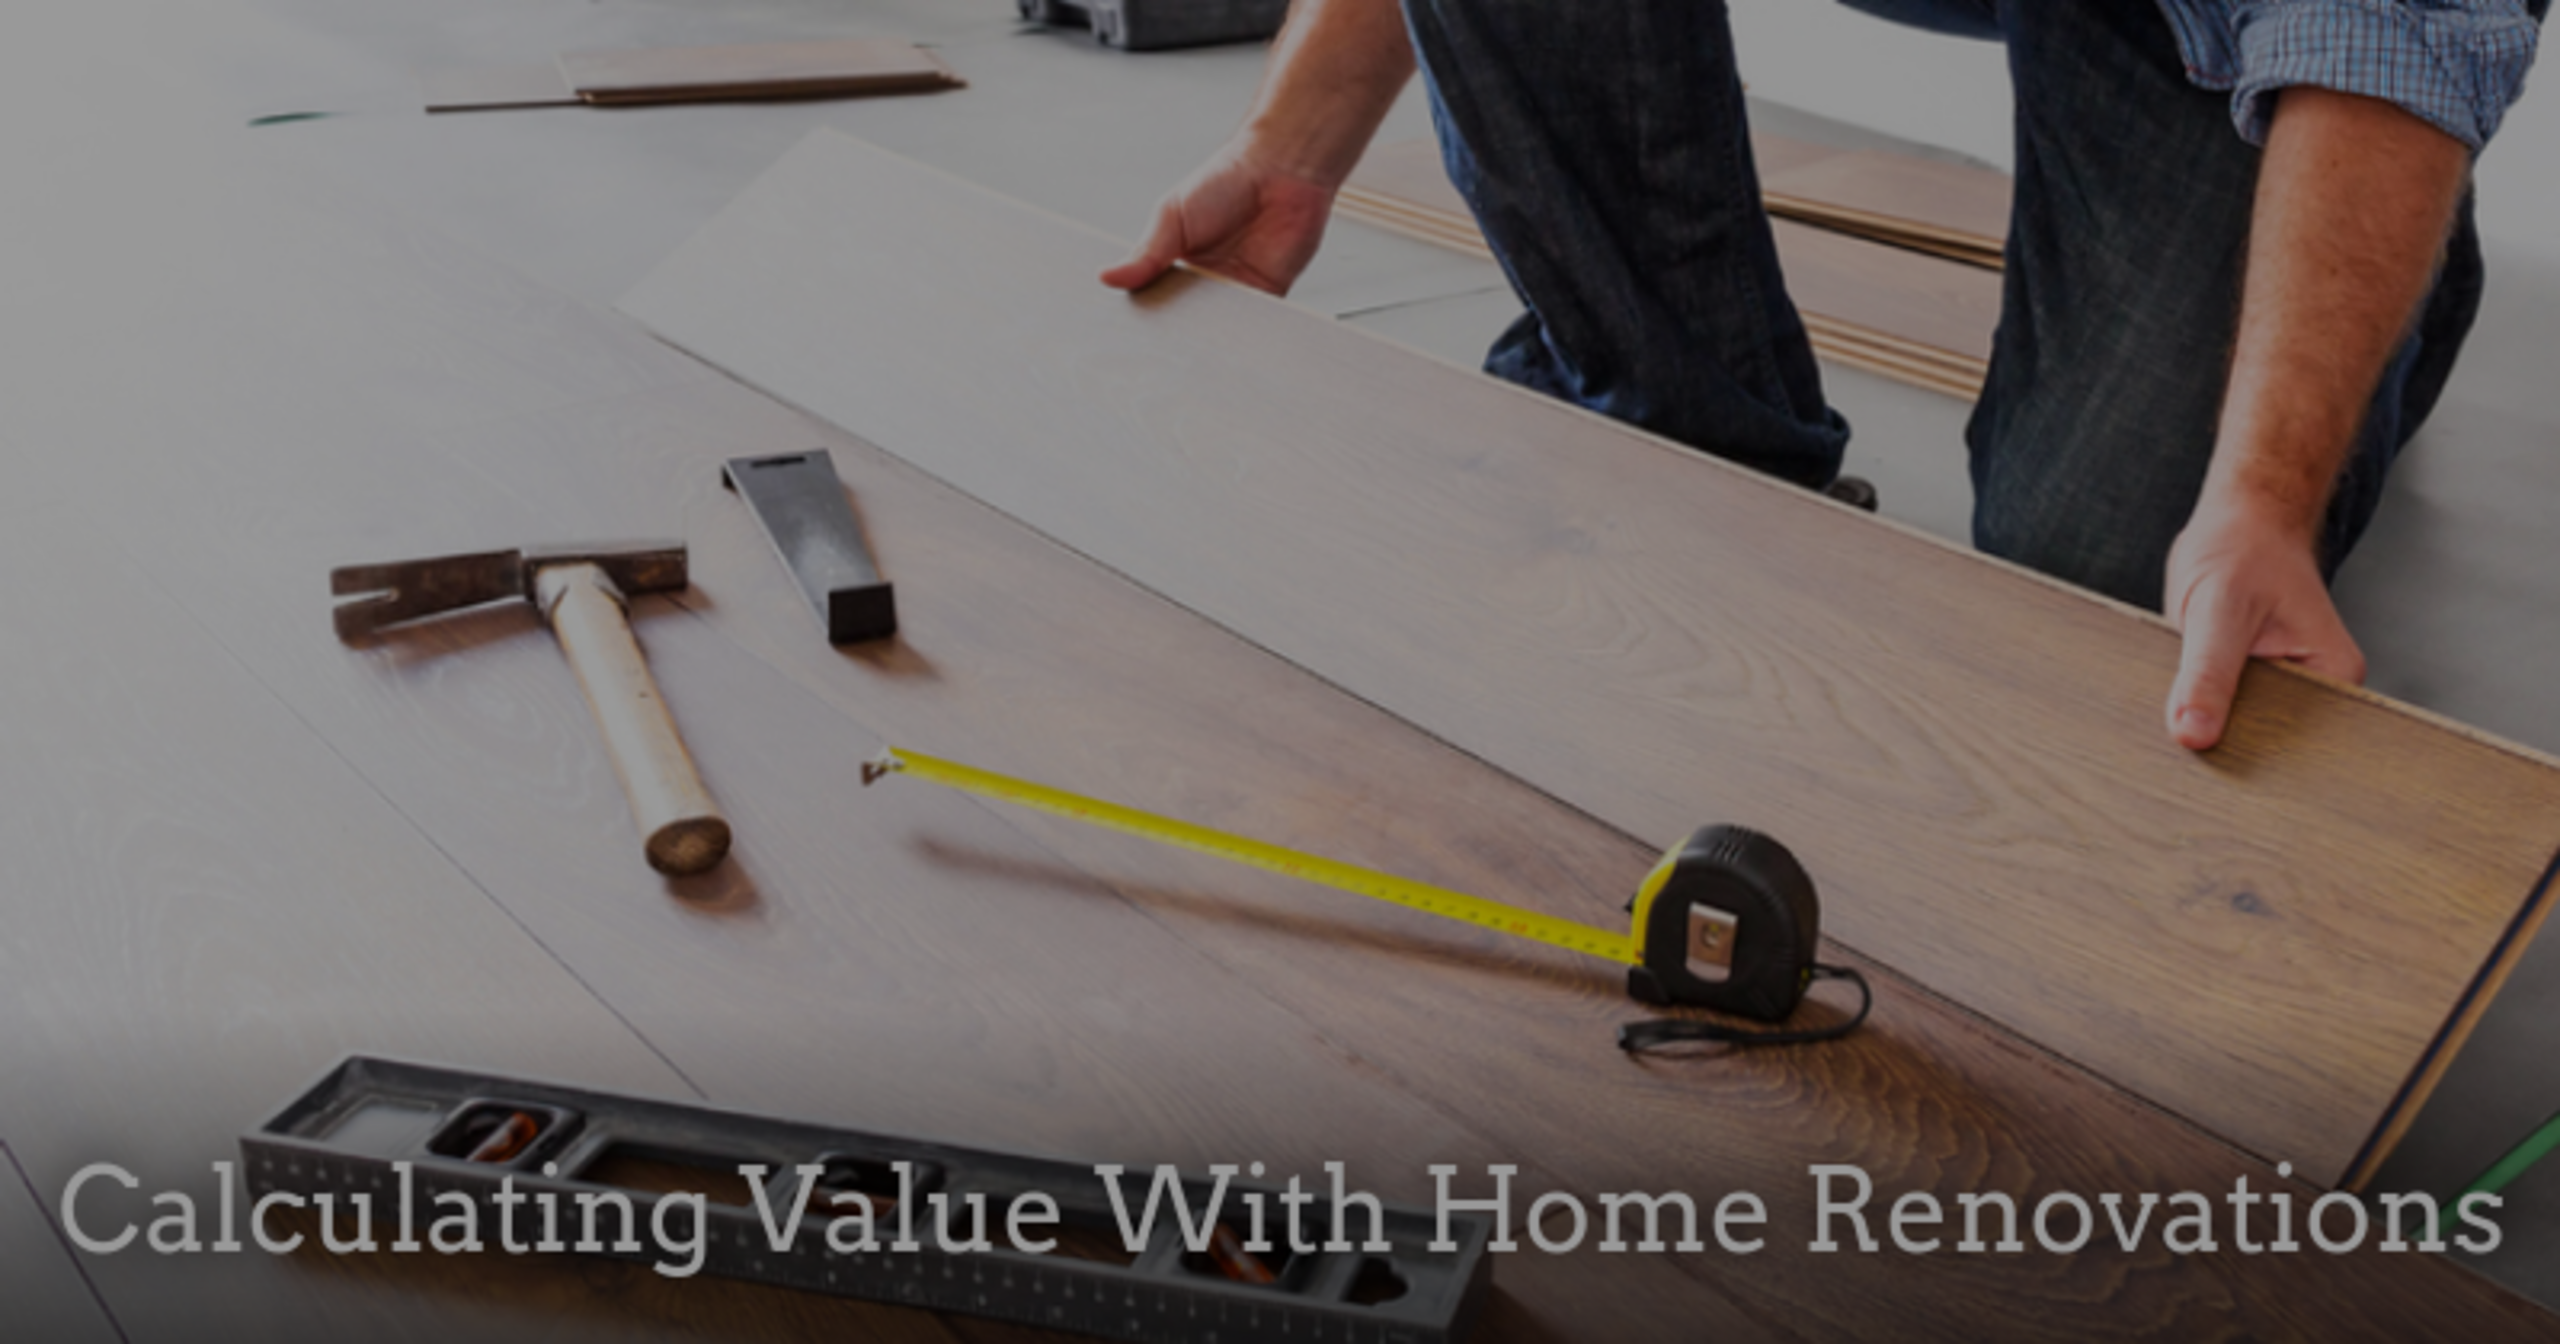 Calculating Home Value with Home Renovations